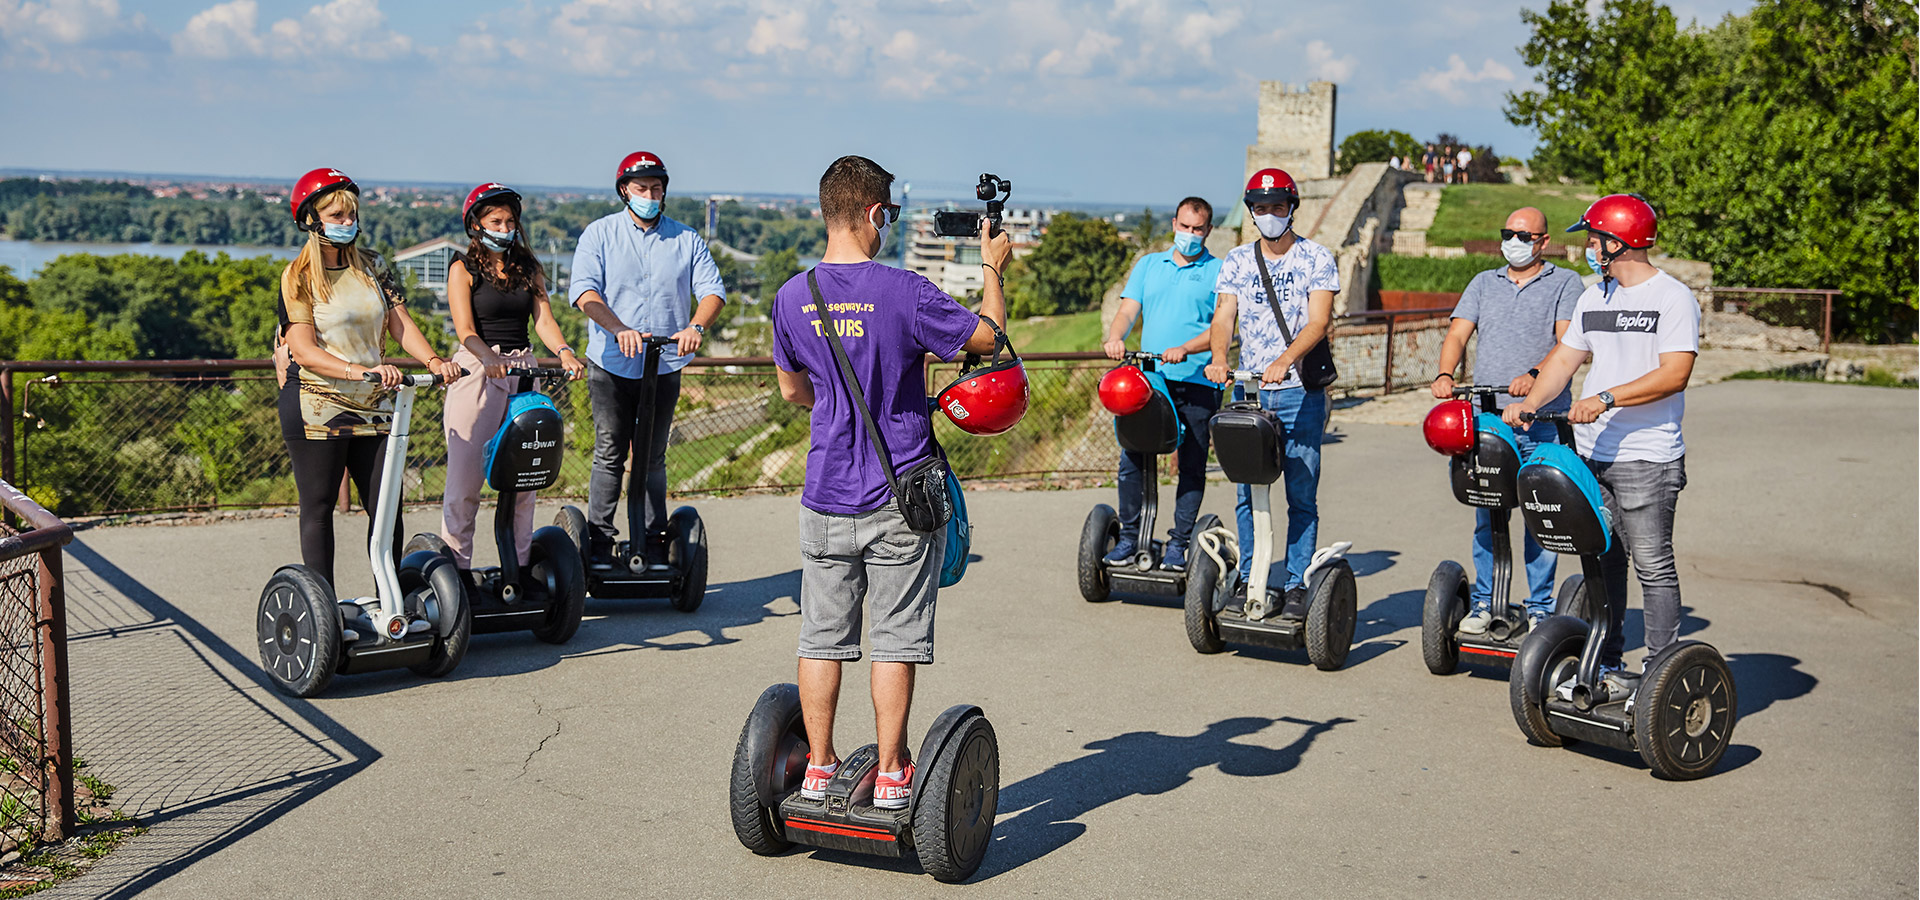 Segway Belgrade: Get to know Belgrade and experience an adventure to remember